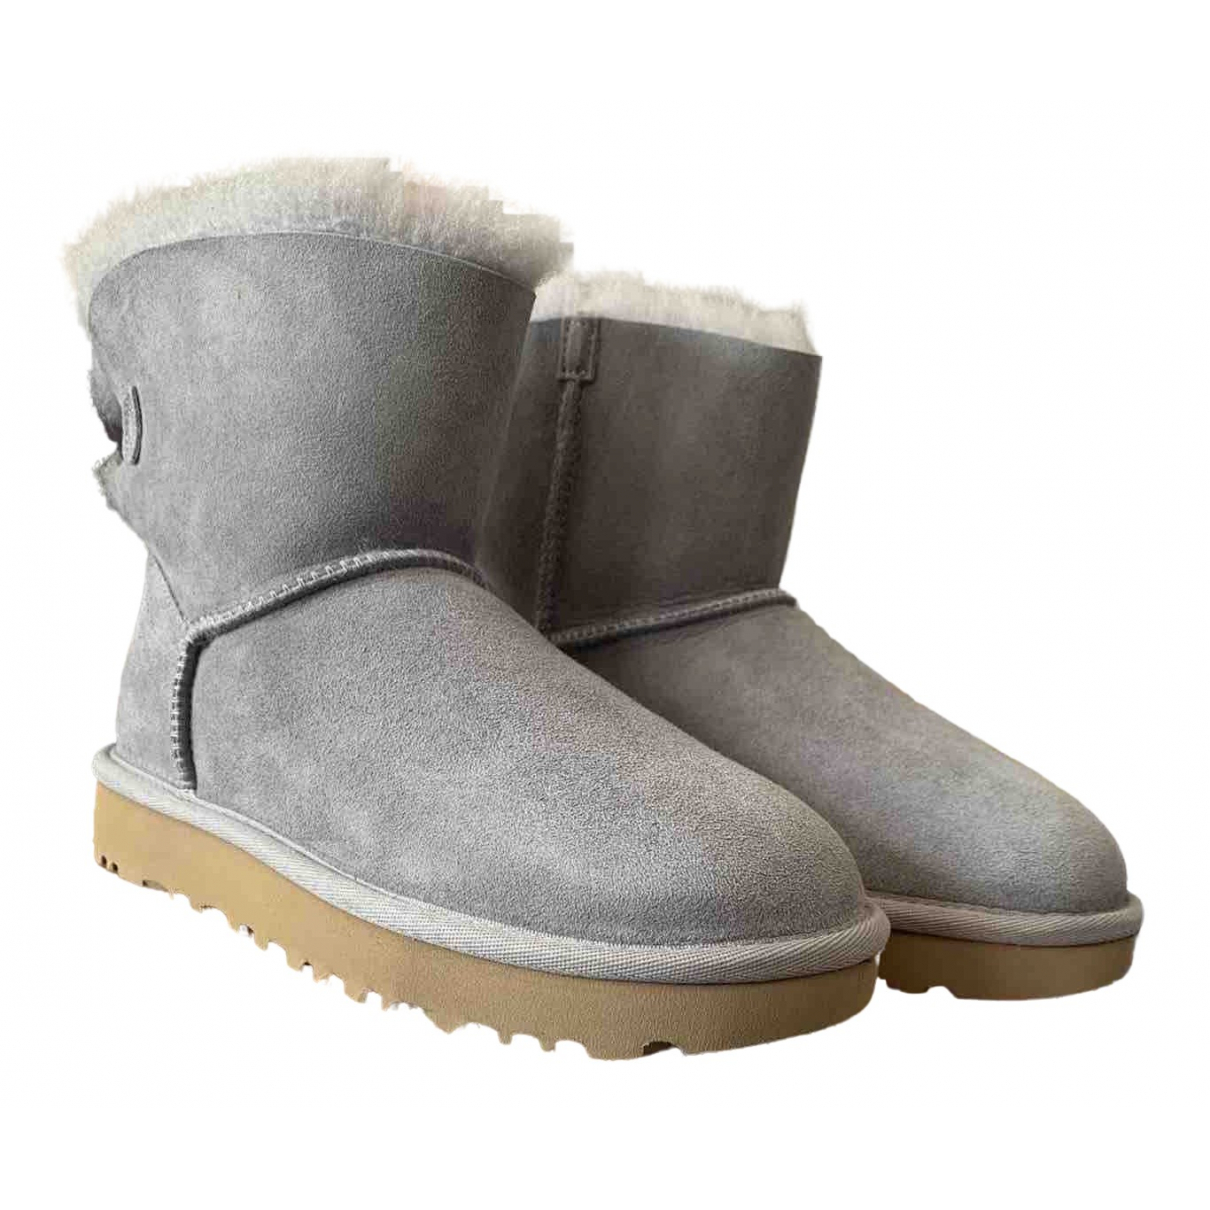 Ugg \N Grey Suede Boots for Women 36 EU